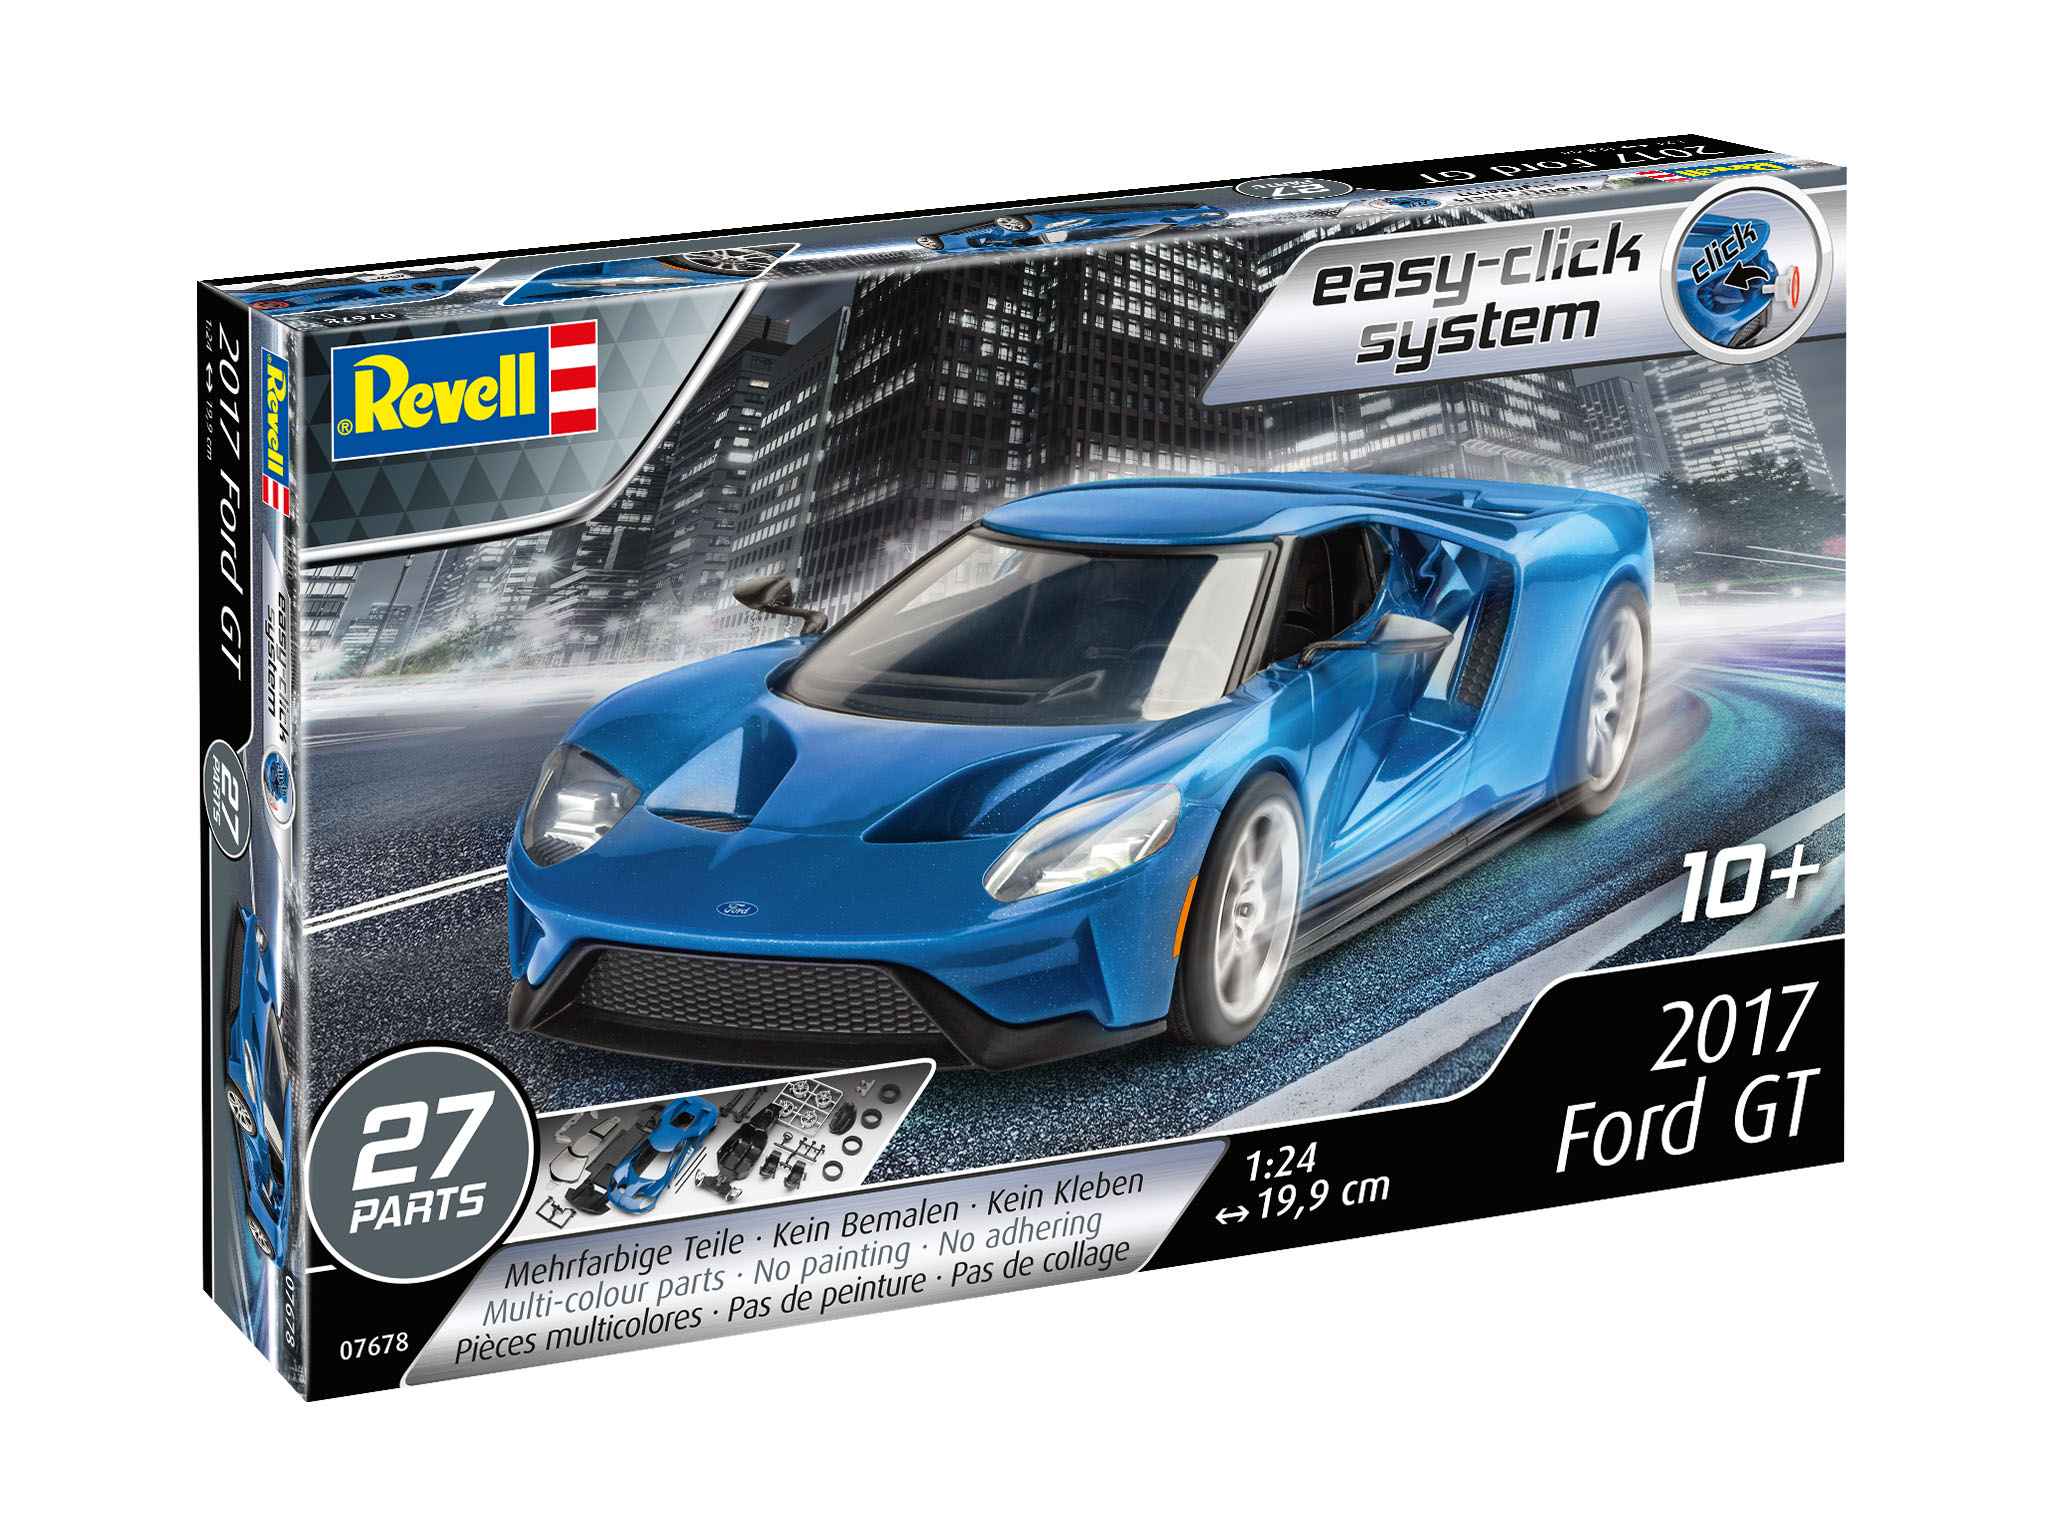 maquette-puzzle-3d-easy-click-system-2017-ford-gt